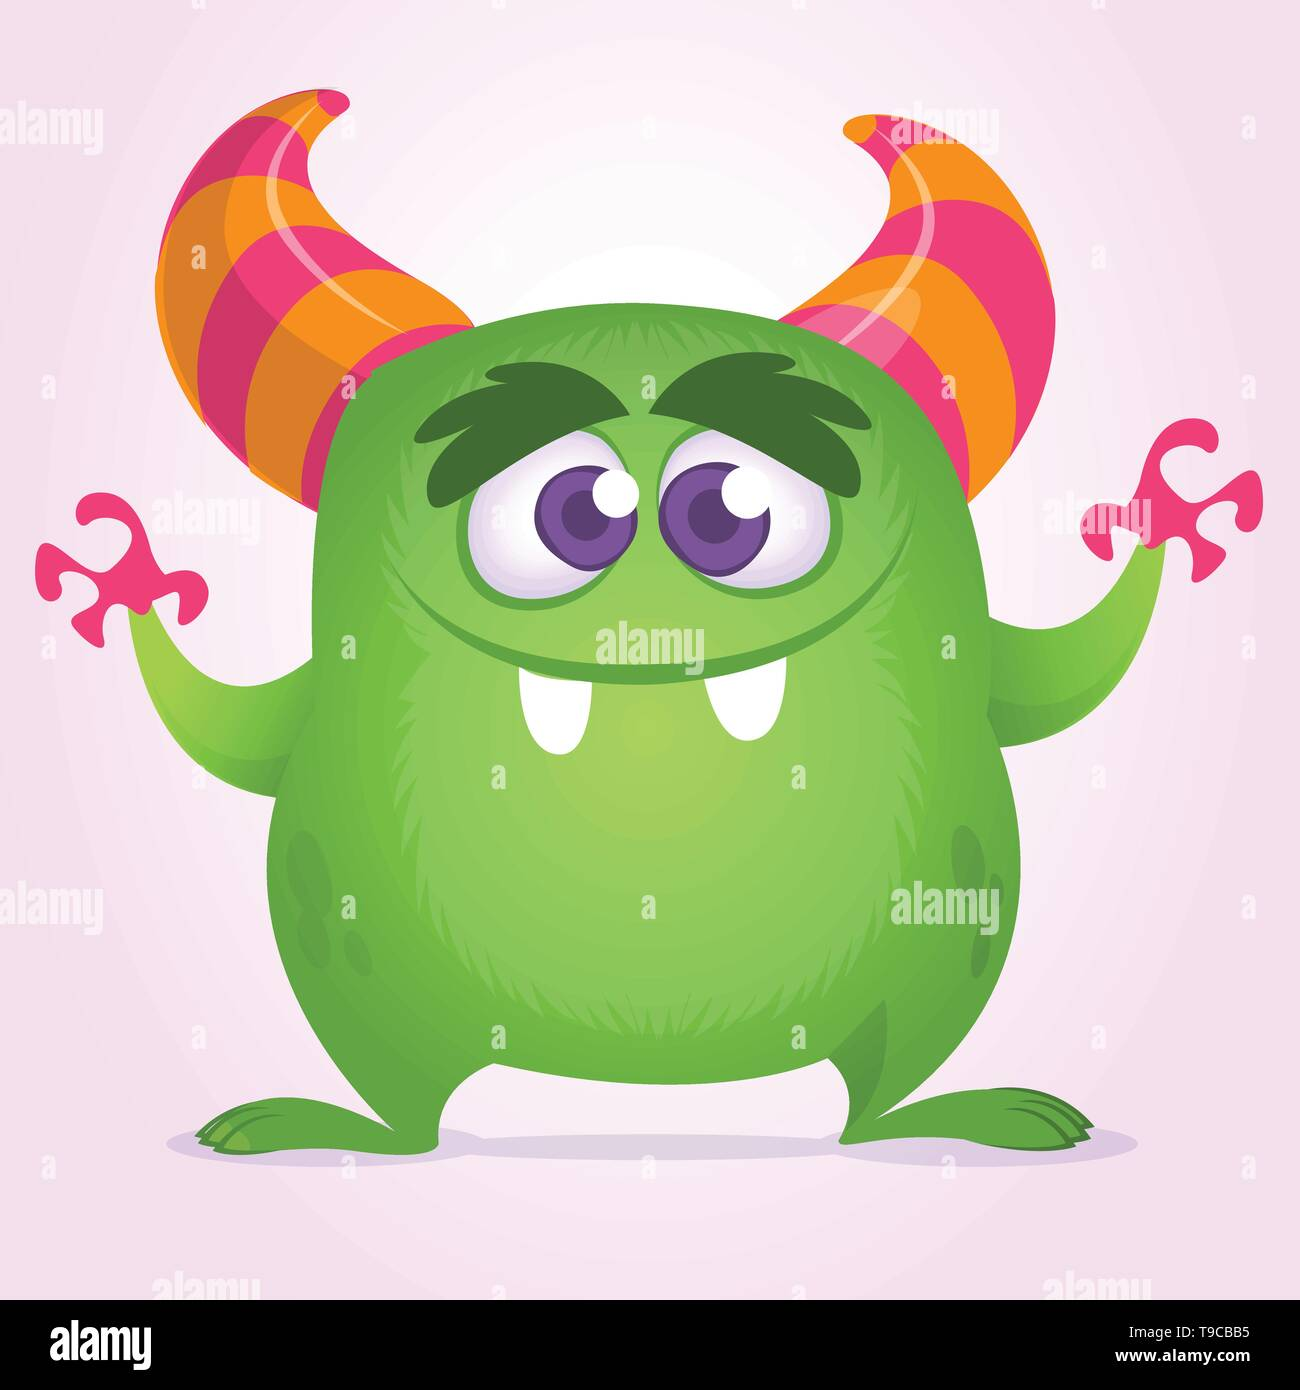 Happy cartoon monster with big mouth full of teeth. Vector green monster illustration. Halloween character design - Stock Image